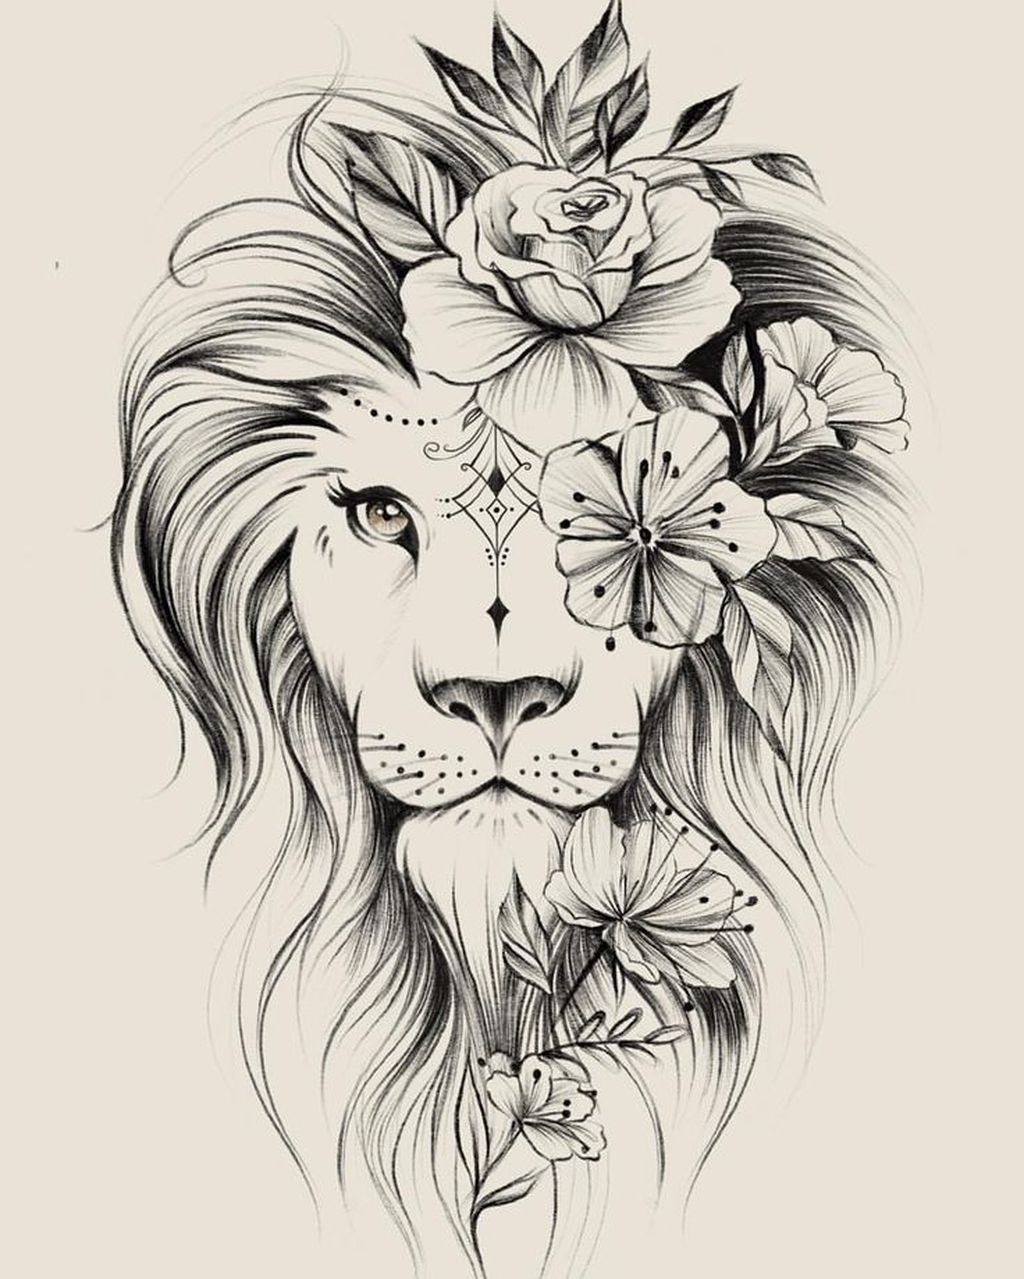 40 Unique Tattoo Drawings Ideas For Your Inspiration In 2020 Tattoo Drawings Tattoos Lion Tattoo